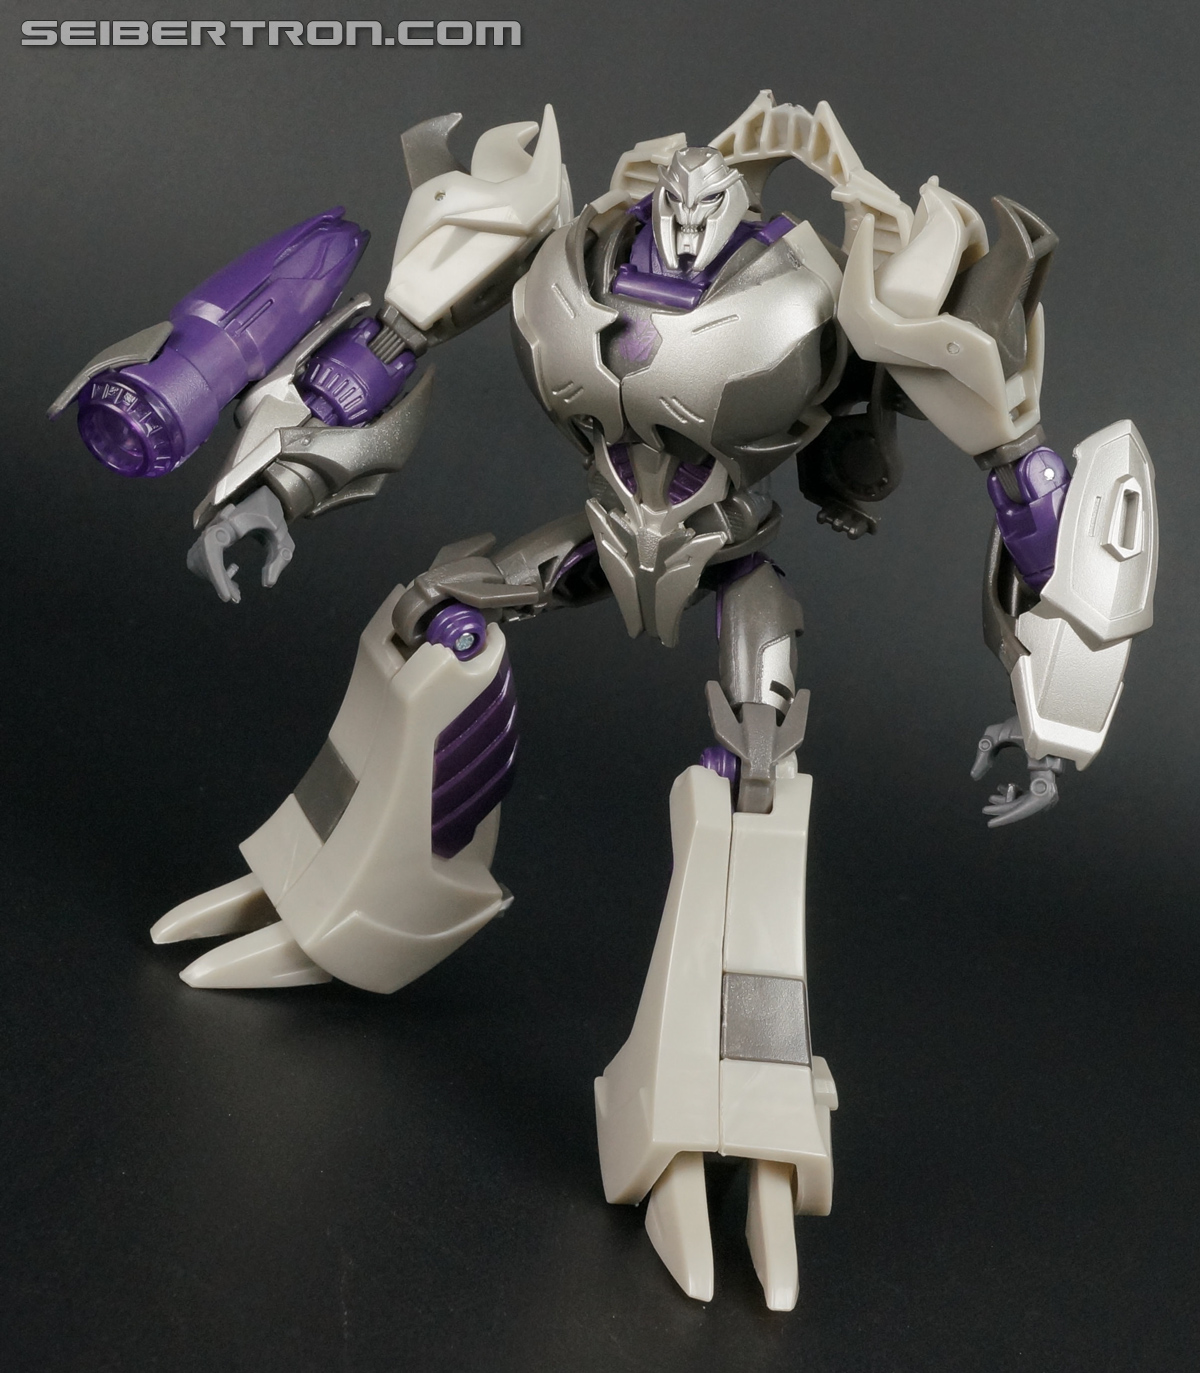 Transformers First Edition Megatron (Image #82 of 165)